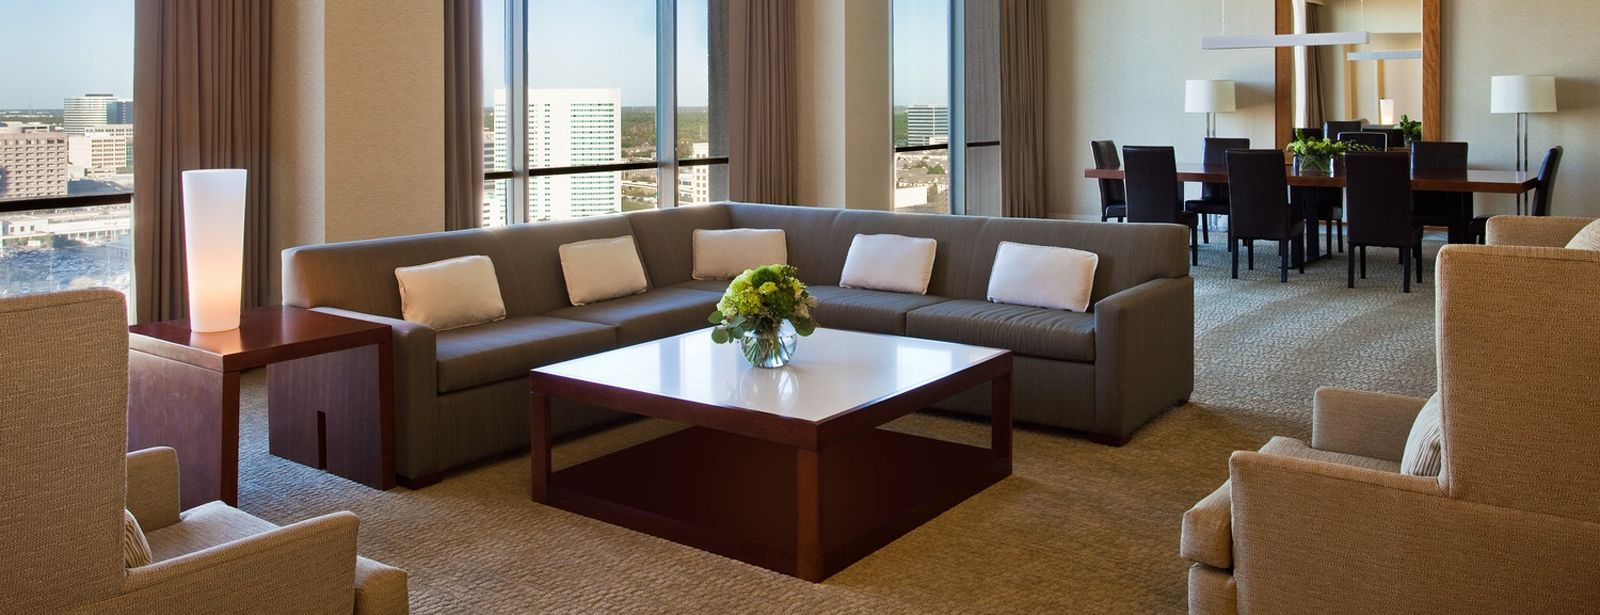 Hotel Accomodations in Houston - Crown Suite - The Westin Oaks Houston at the Galleria